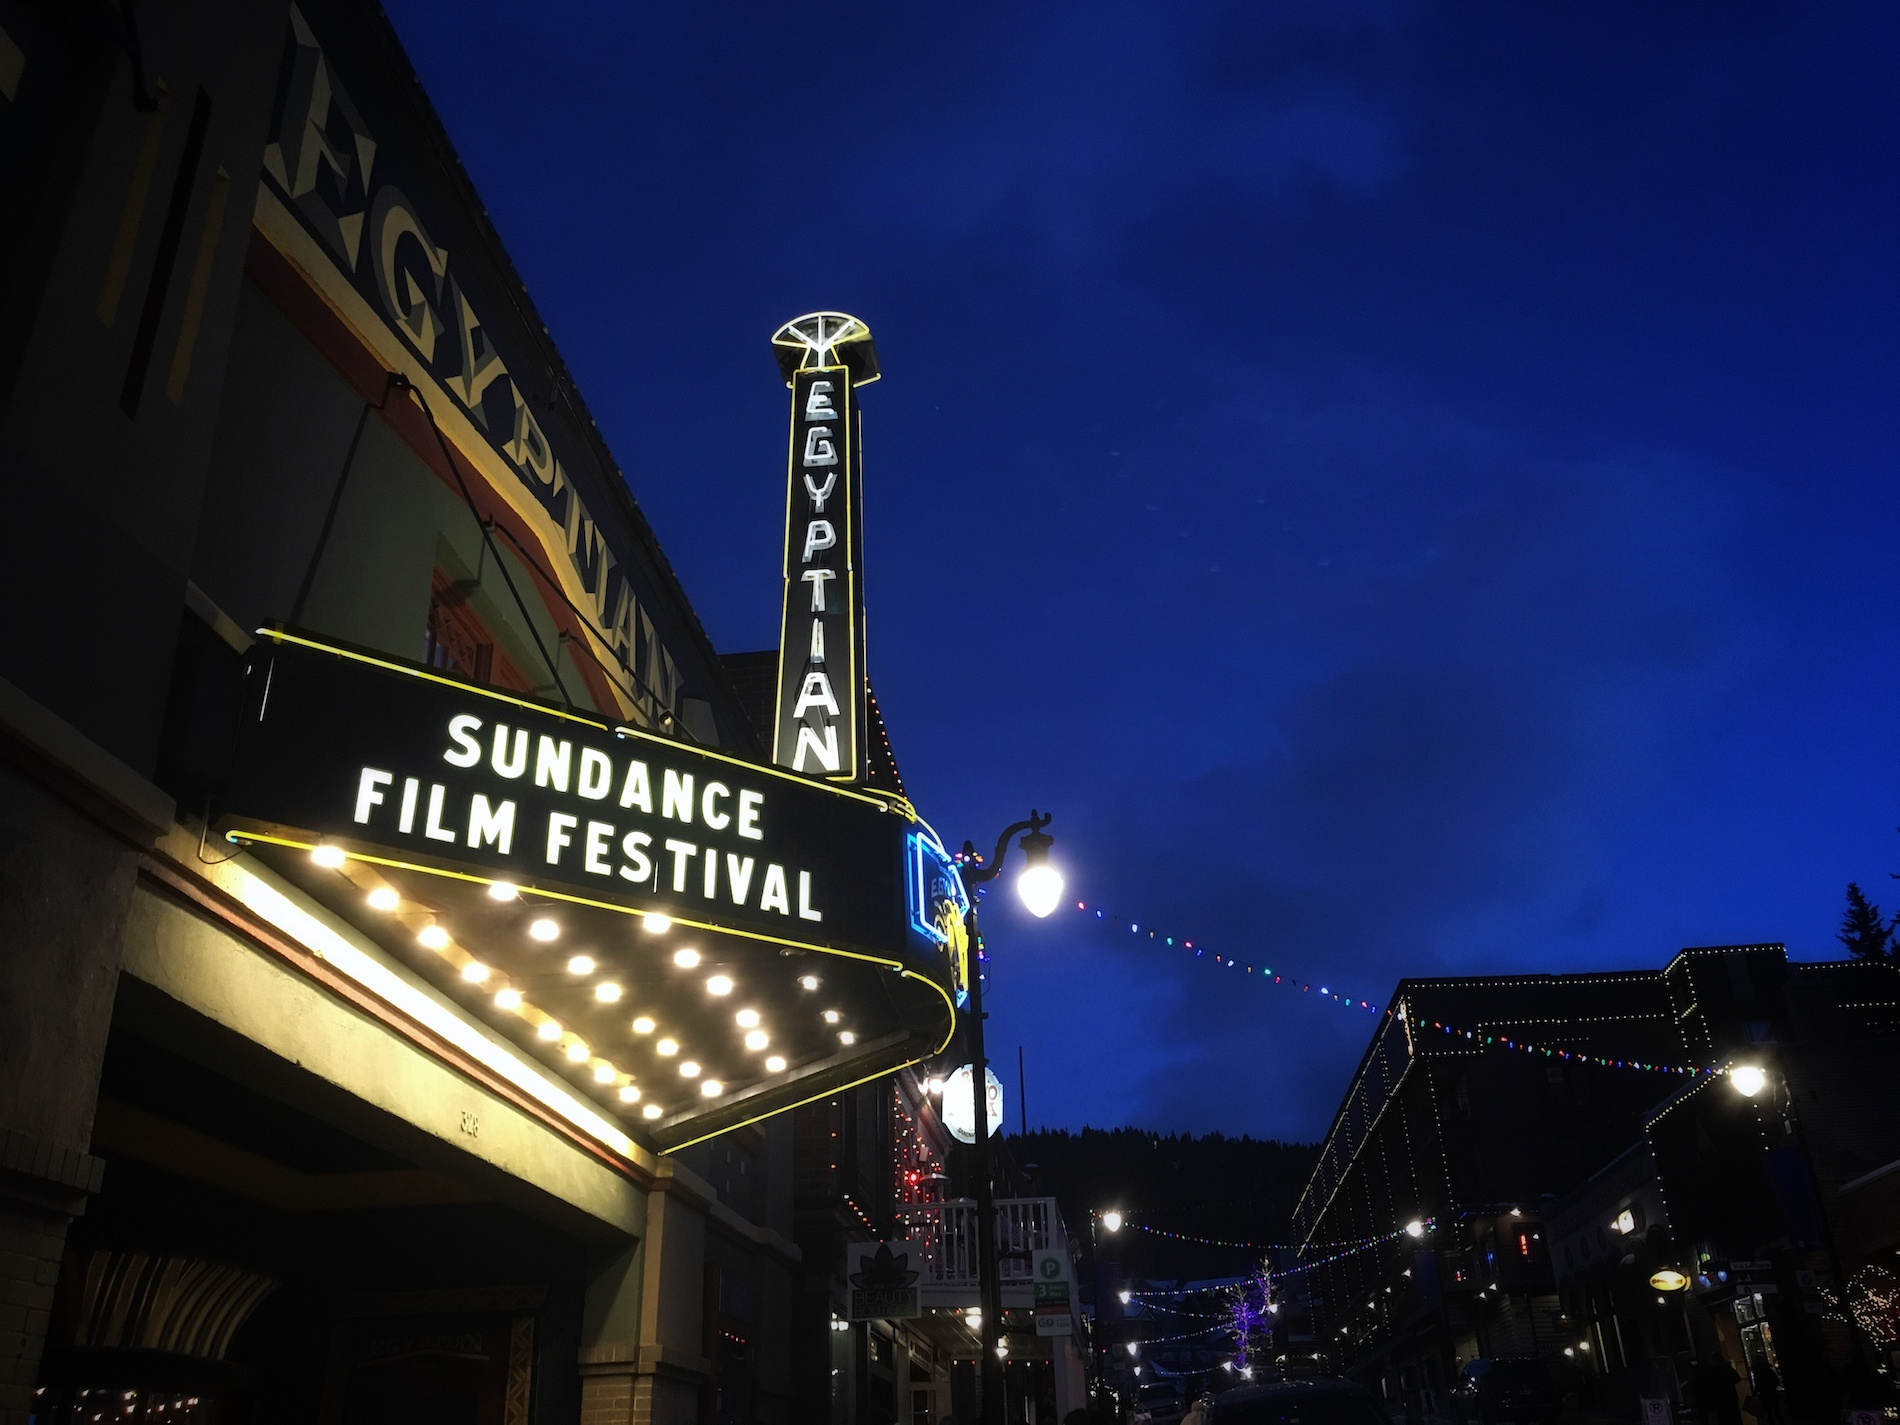 Everything Actors + Filmmakers Should Know About the Sundance Film Festival